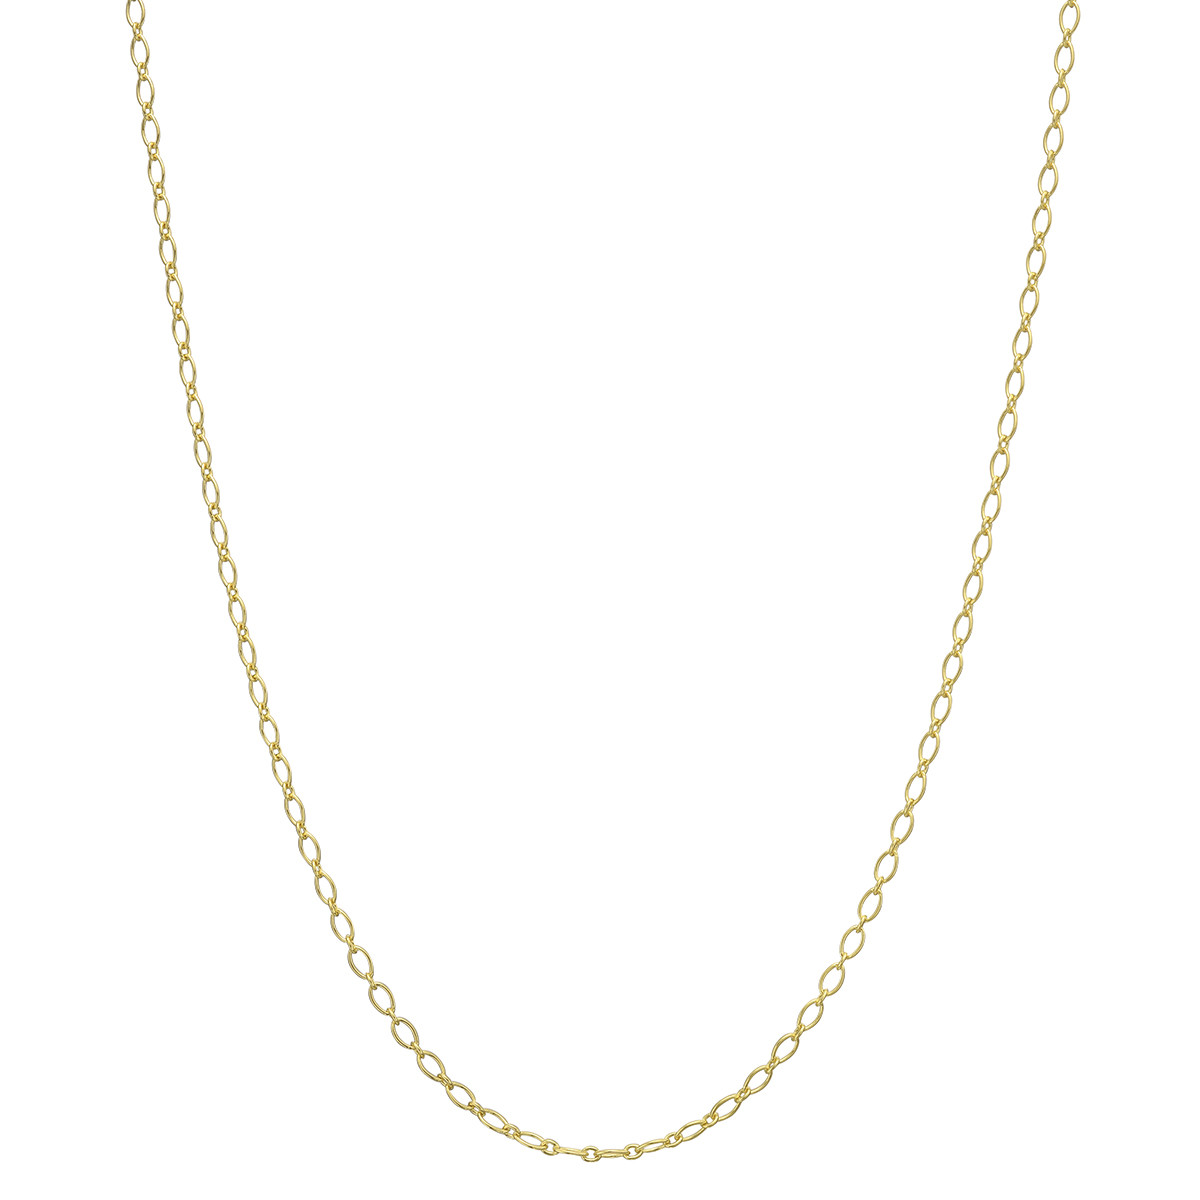 "14k Yellow Gold Baroque Link Chain Necklace (16"")"